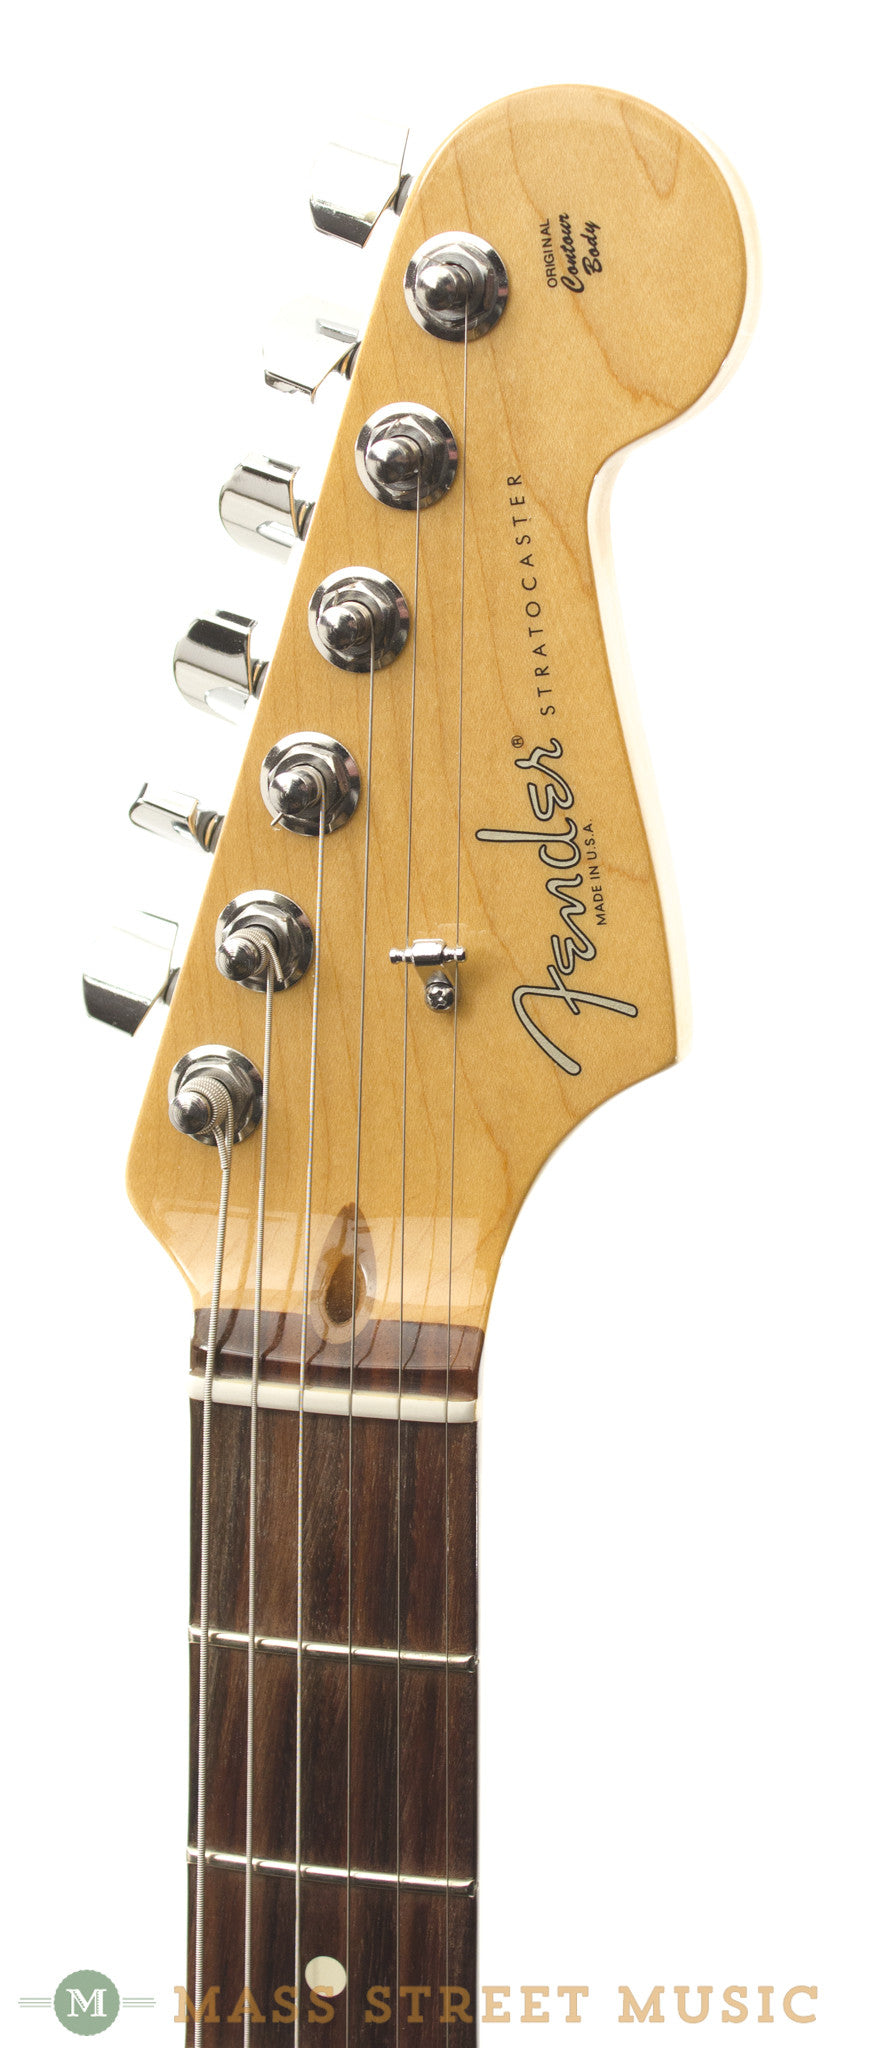 fender american standard strat 2010 used electric guitar mass street music store. Black Bedroom Furniture Sets. Home Design Ideas